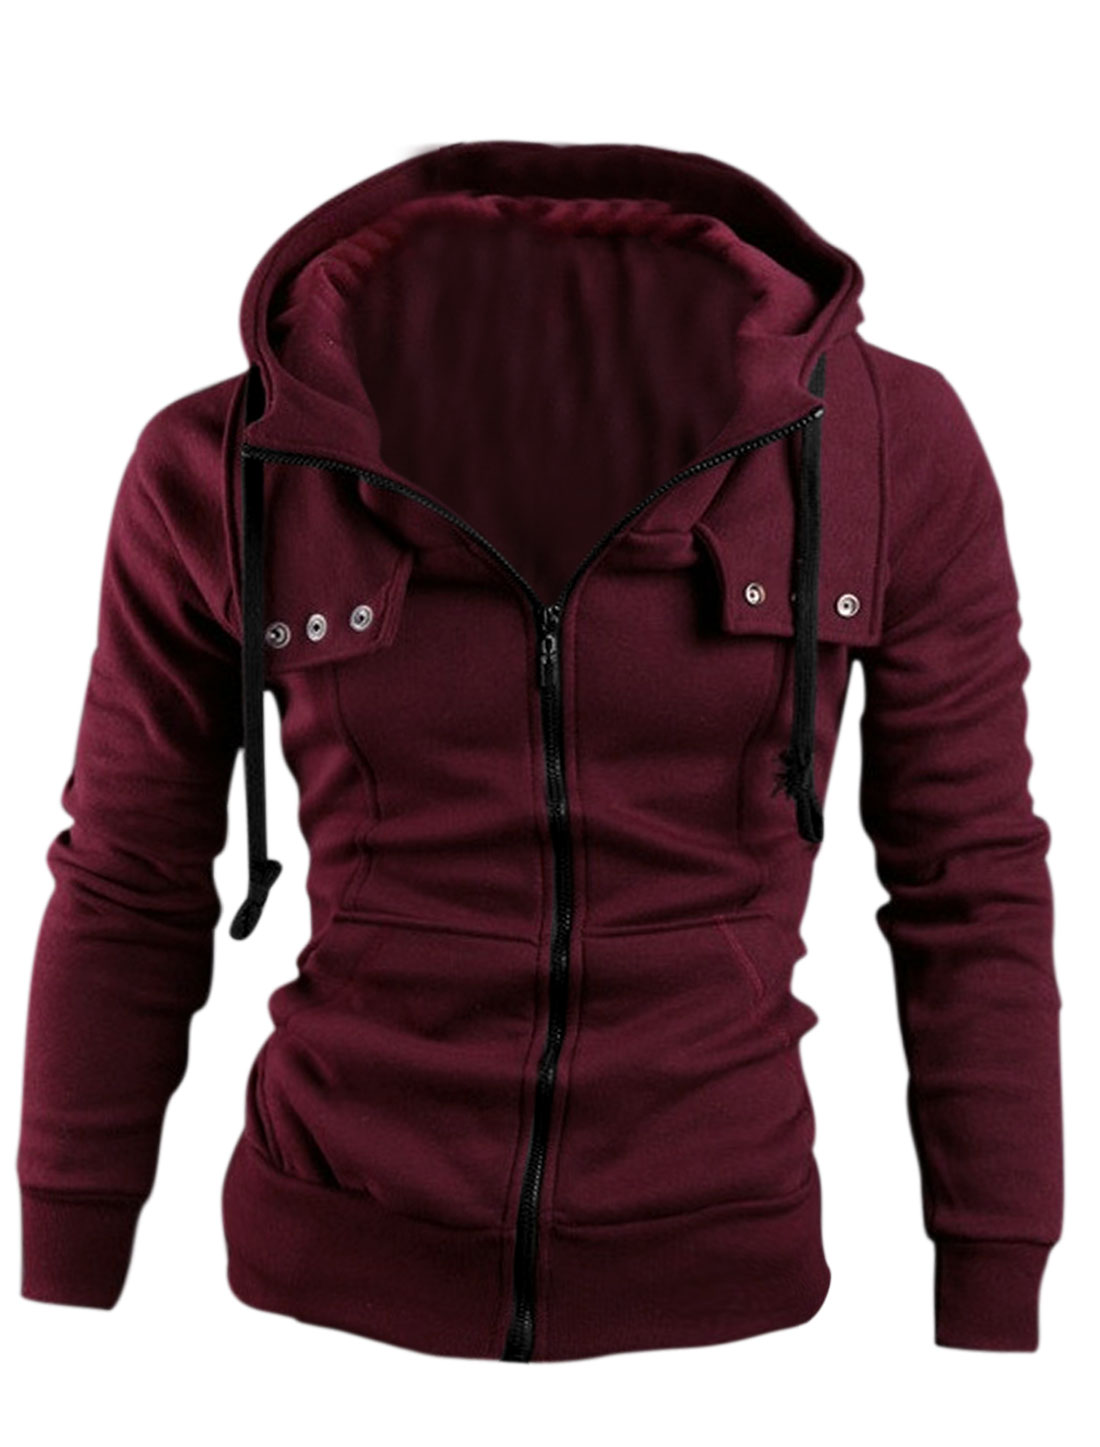 Man's Long Sleeve Zip Up Front Pockets Drawstring Hoodie Burgundy M